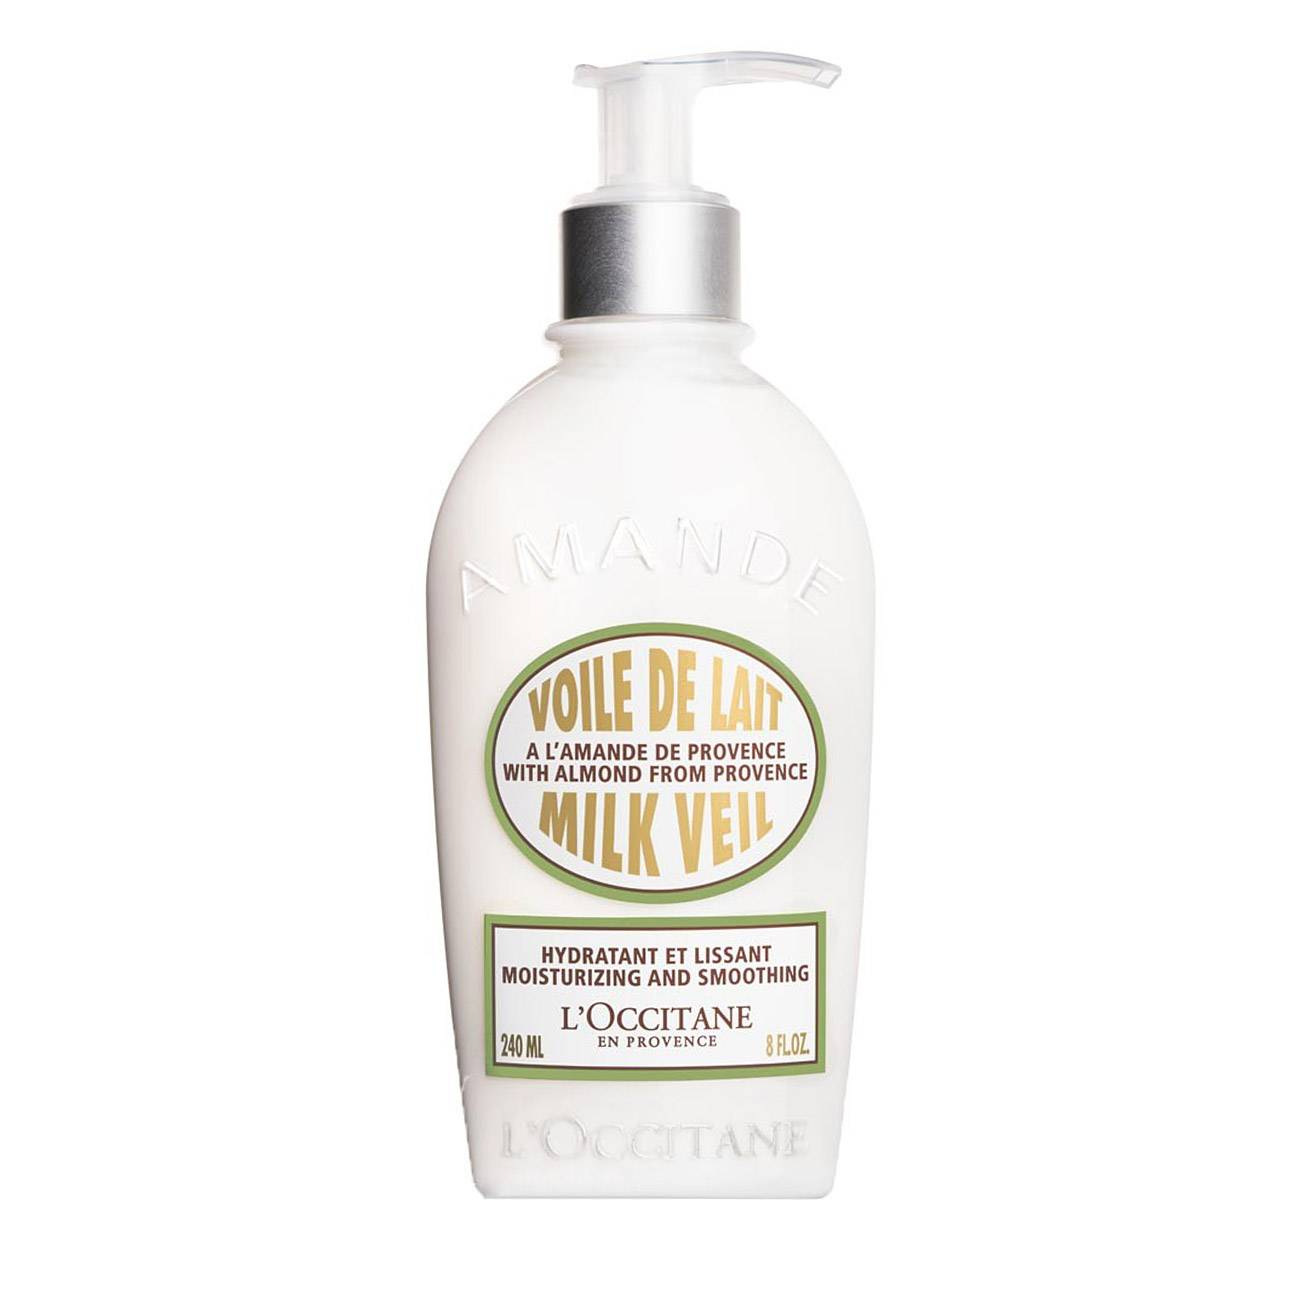 Almond Milk Veil 240 Ml L'occitane imagine 2021 bestvalue.eu